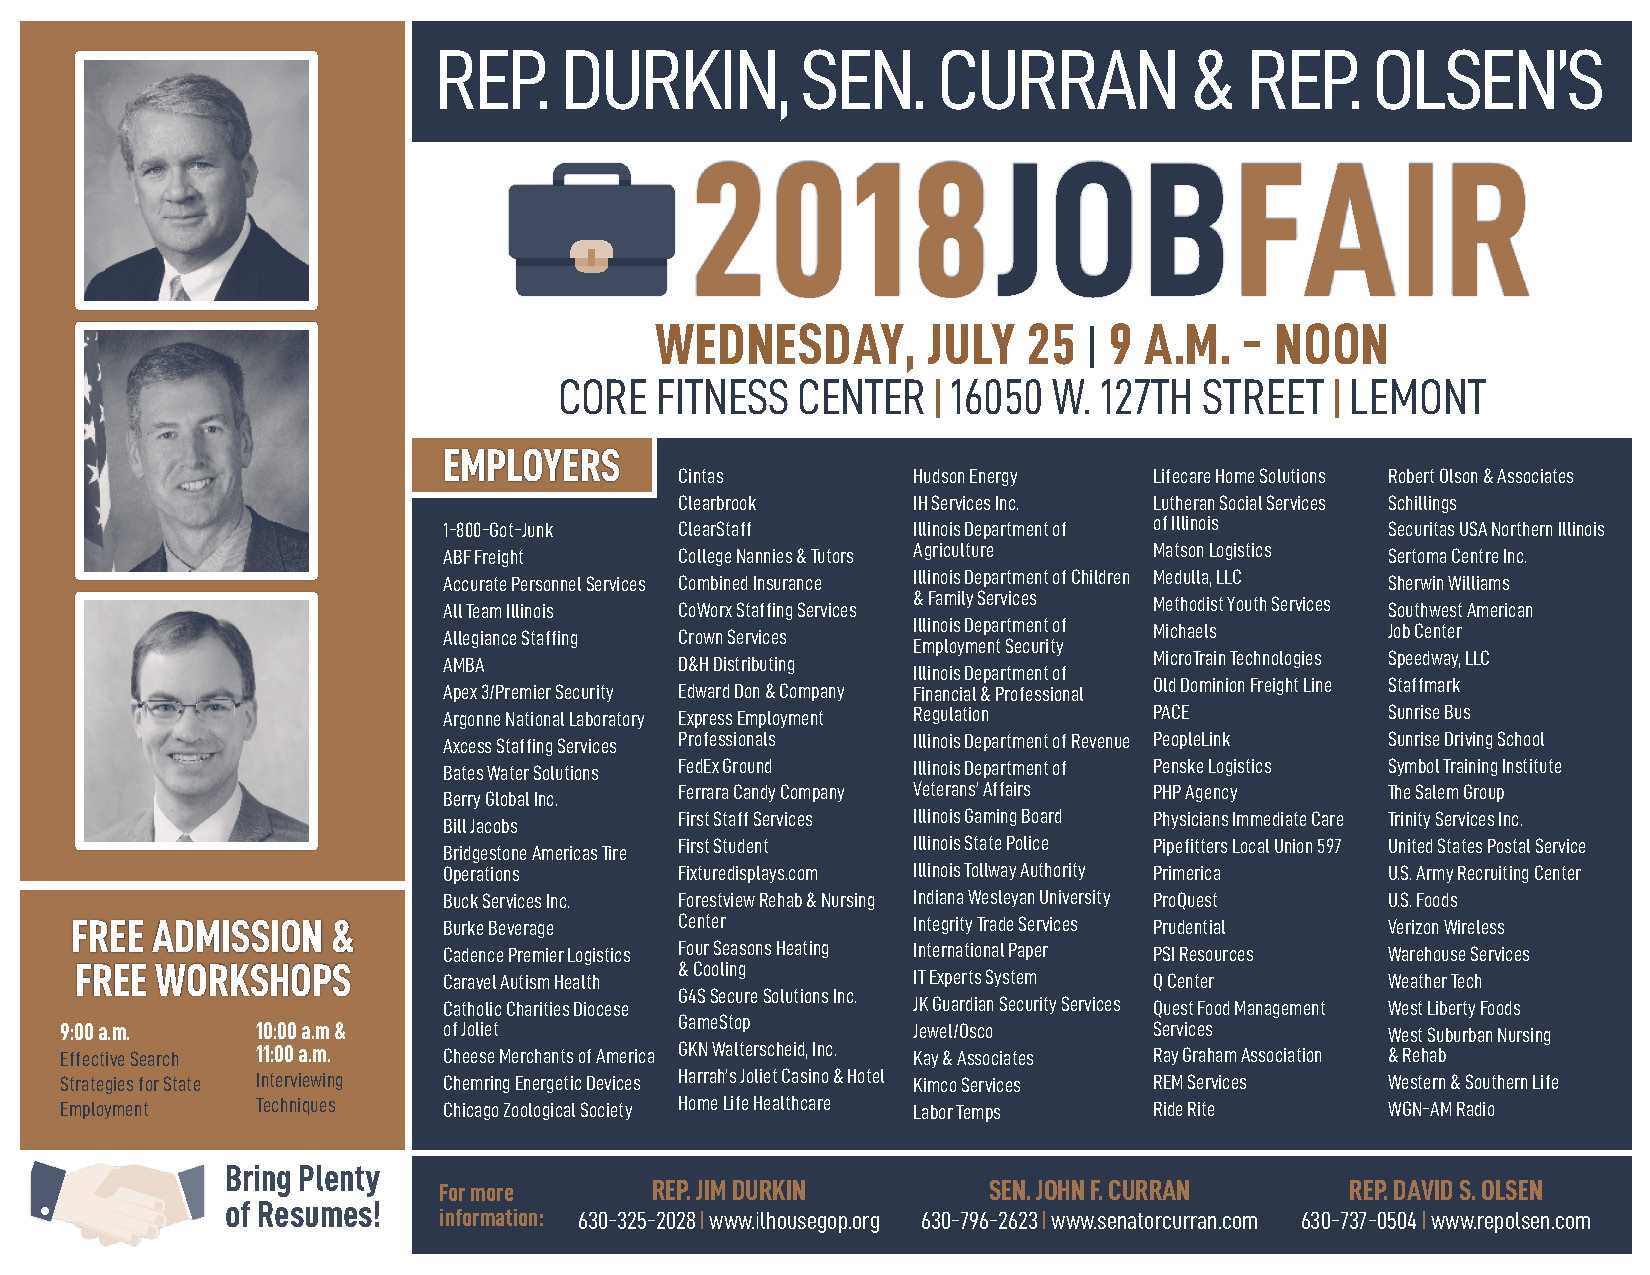 jobs_fair_flyer_2018.jpg